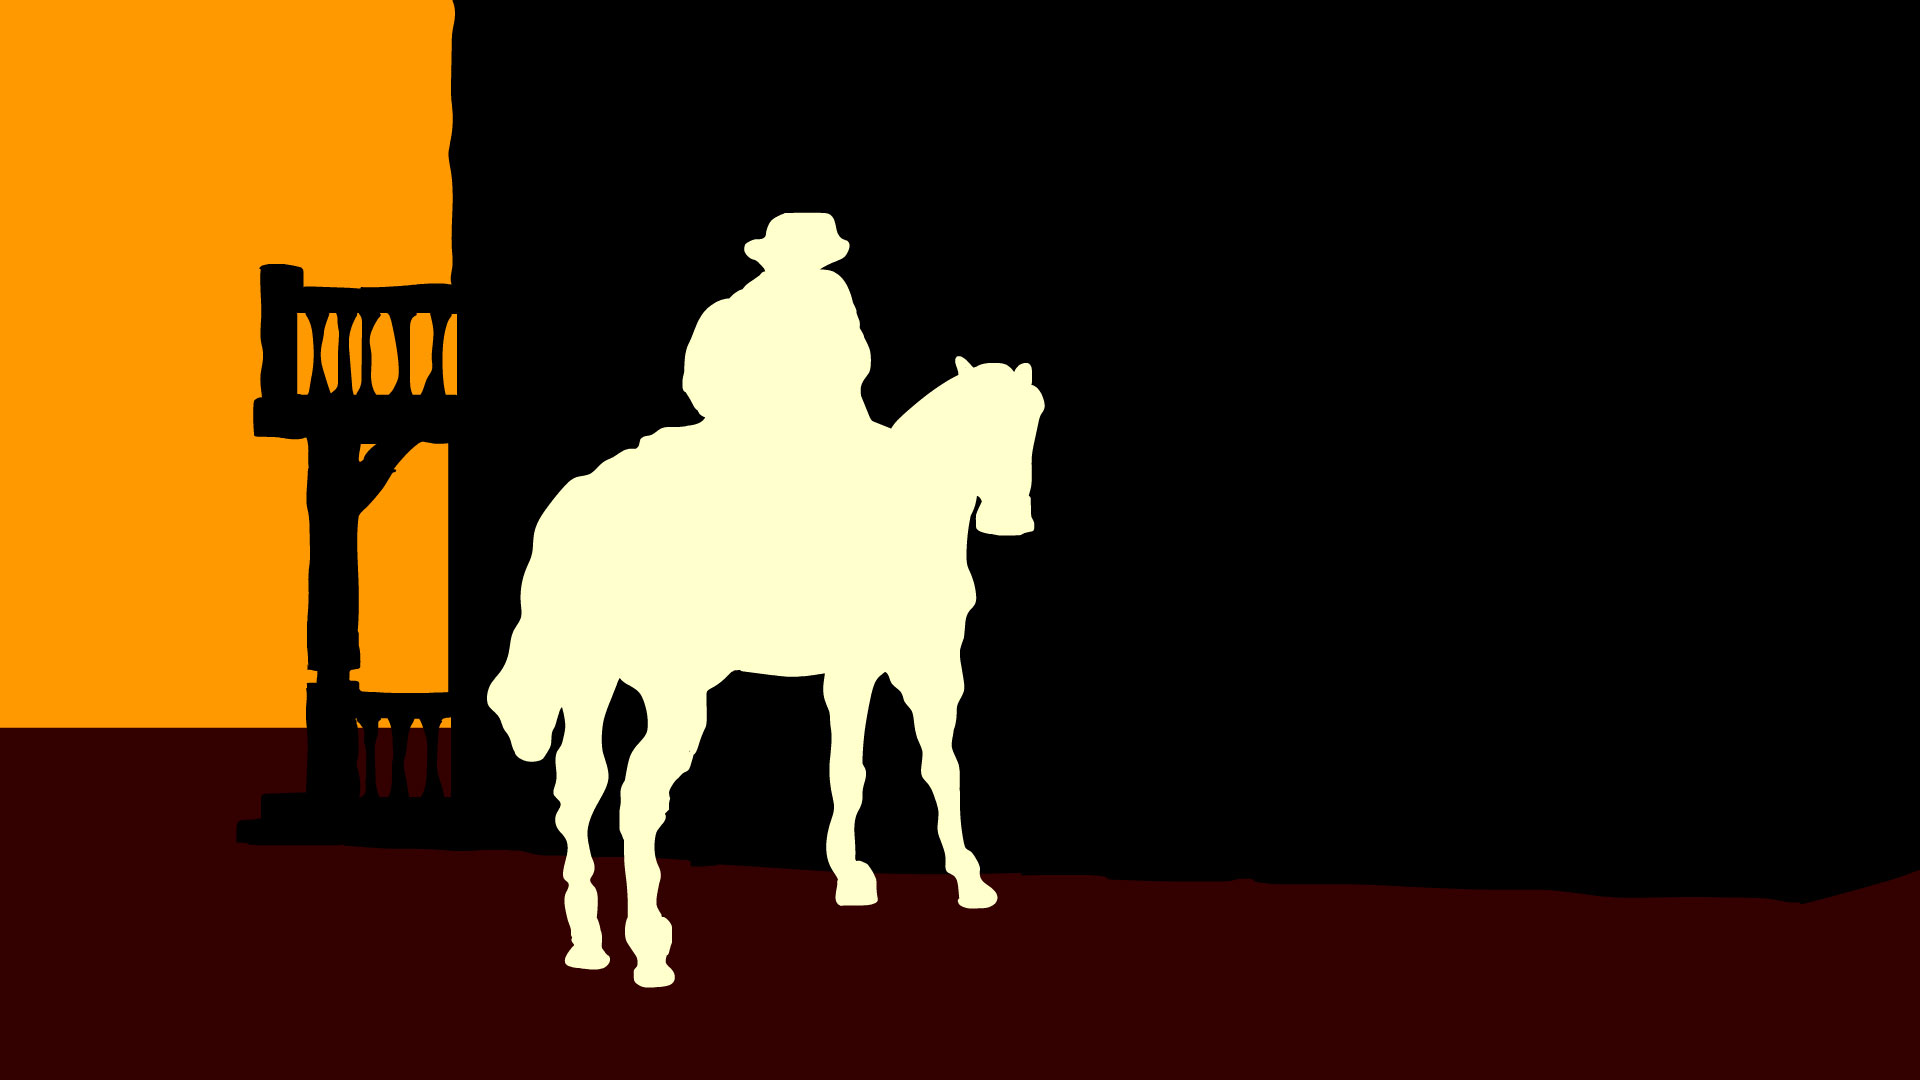 A film still from an Wild West inspired animation